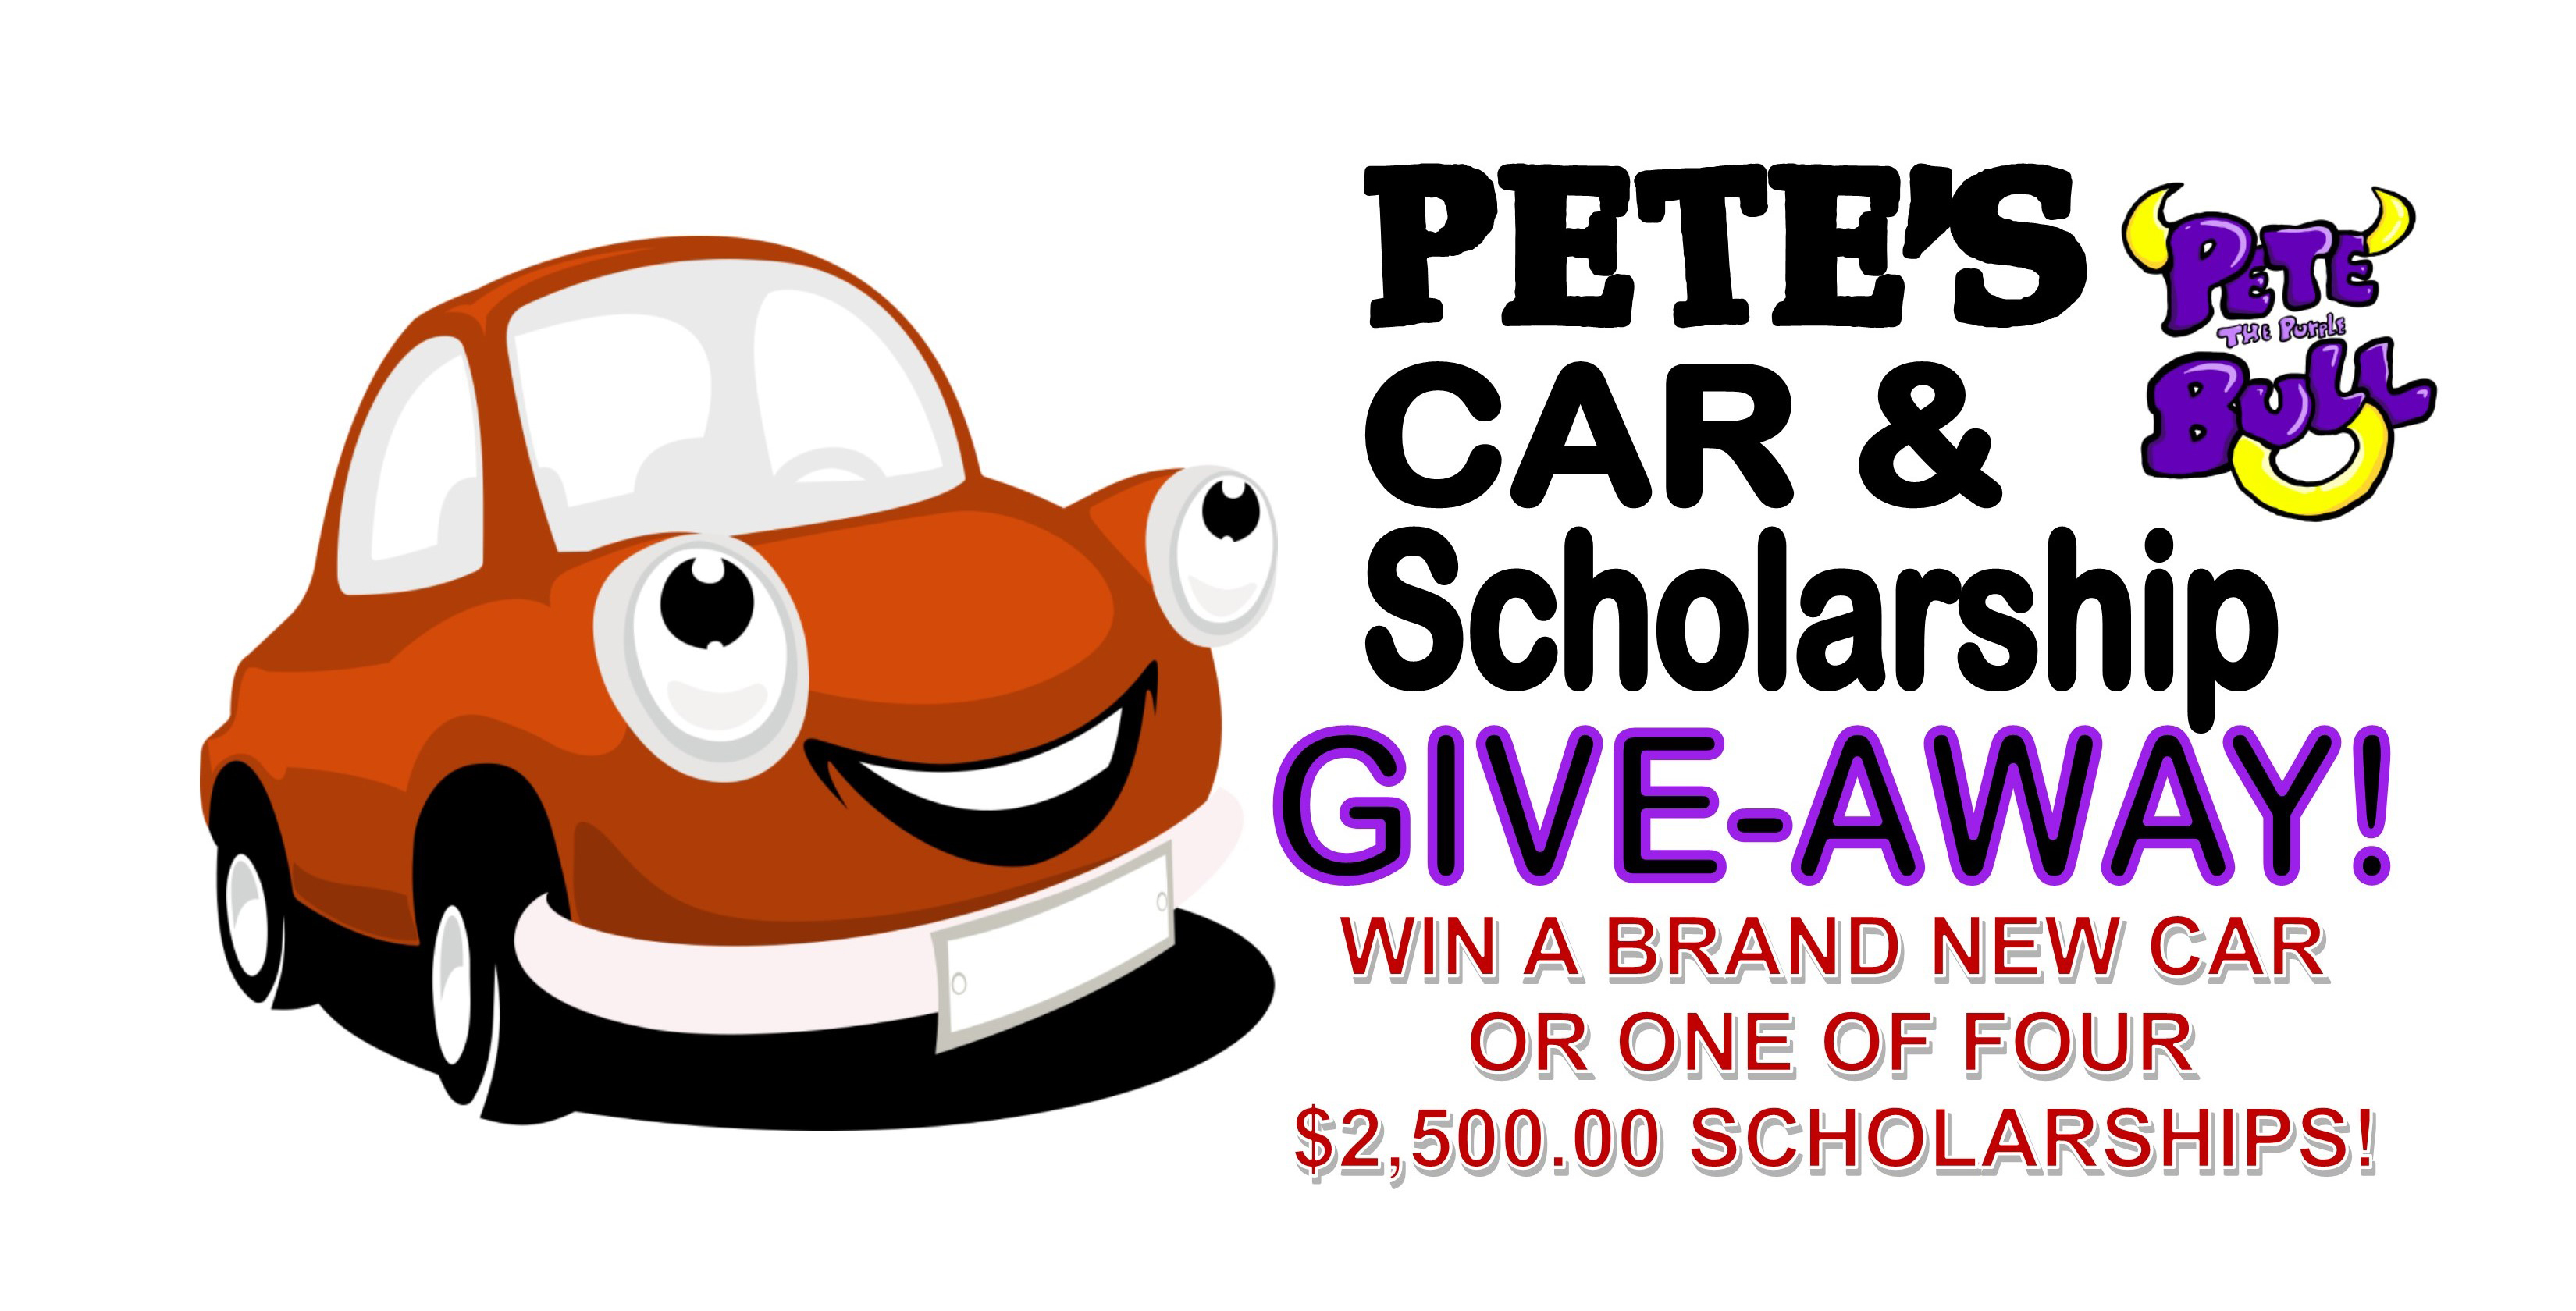 Photo of a stock image car with the words 'Pete's Car and Scholarship Give-Away! Win a brand new car or one of four $2,500.00 scholarships!'